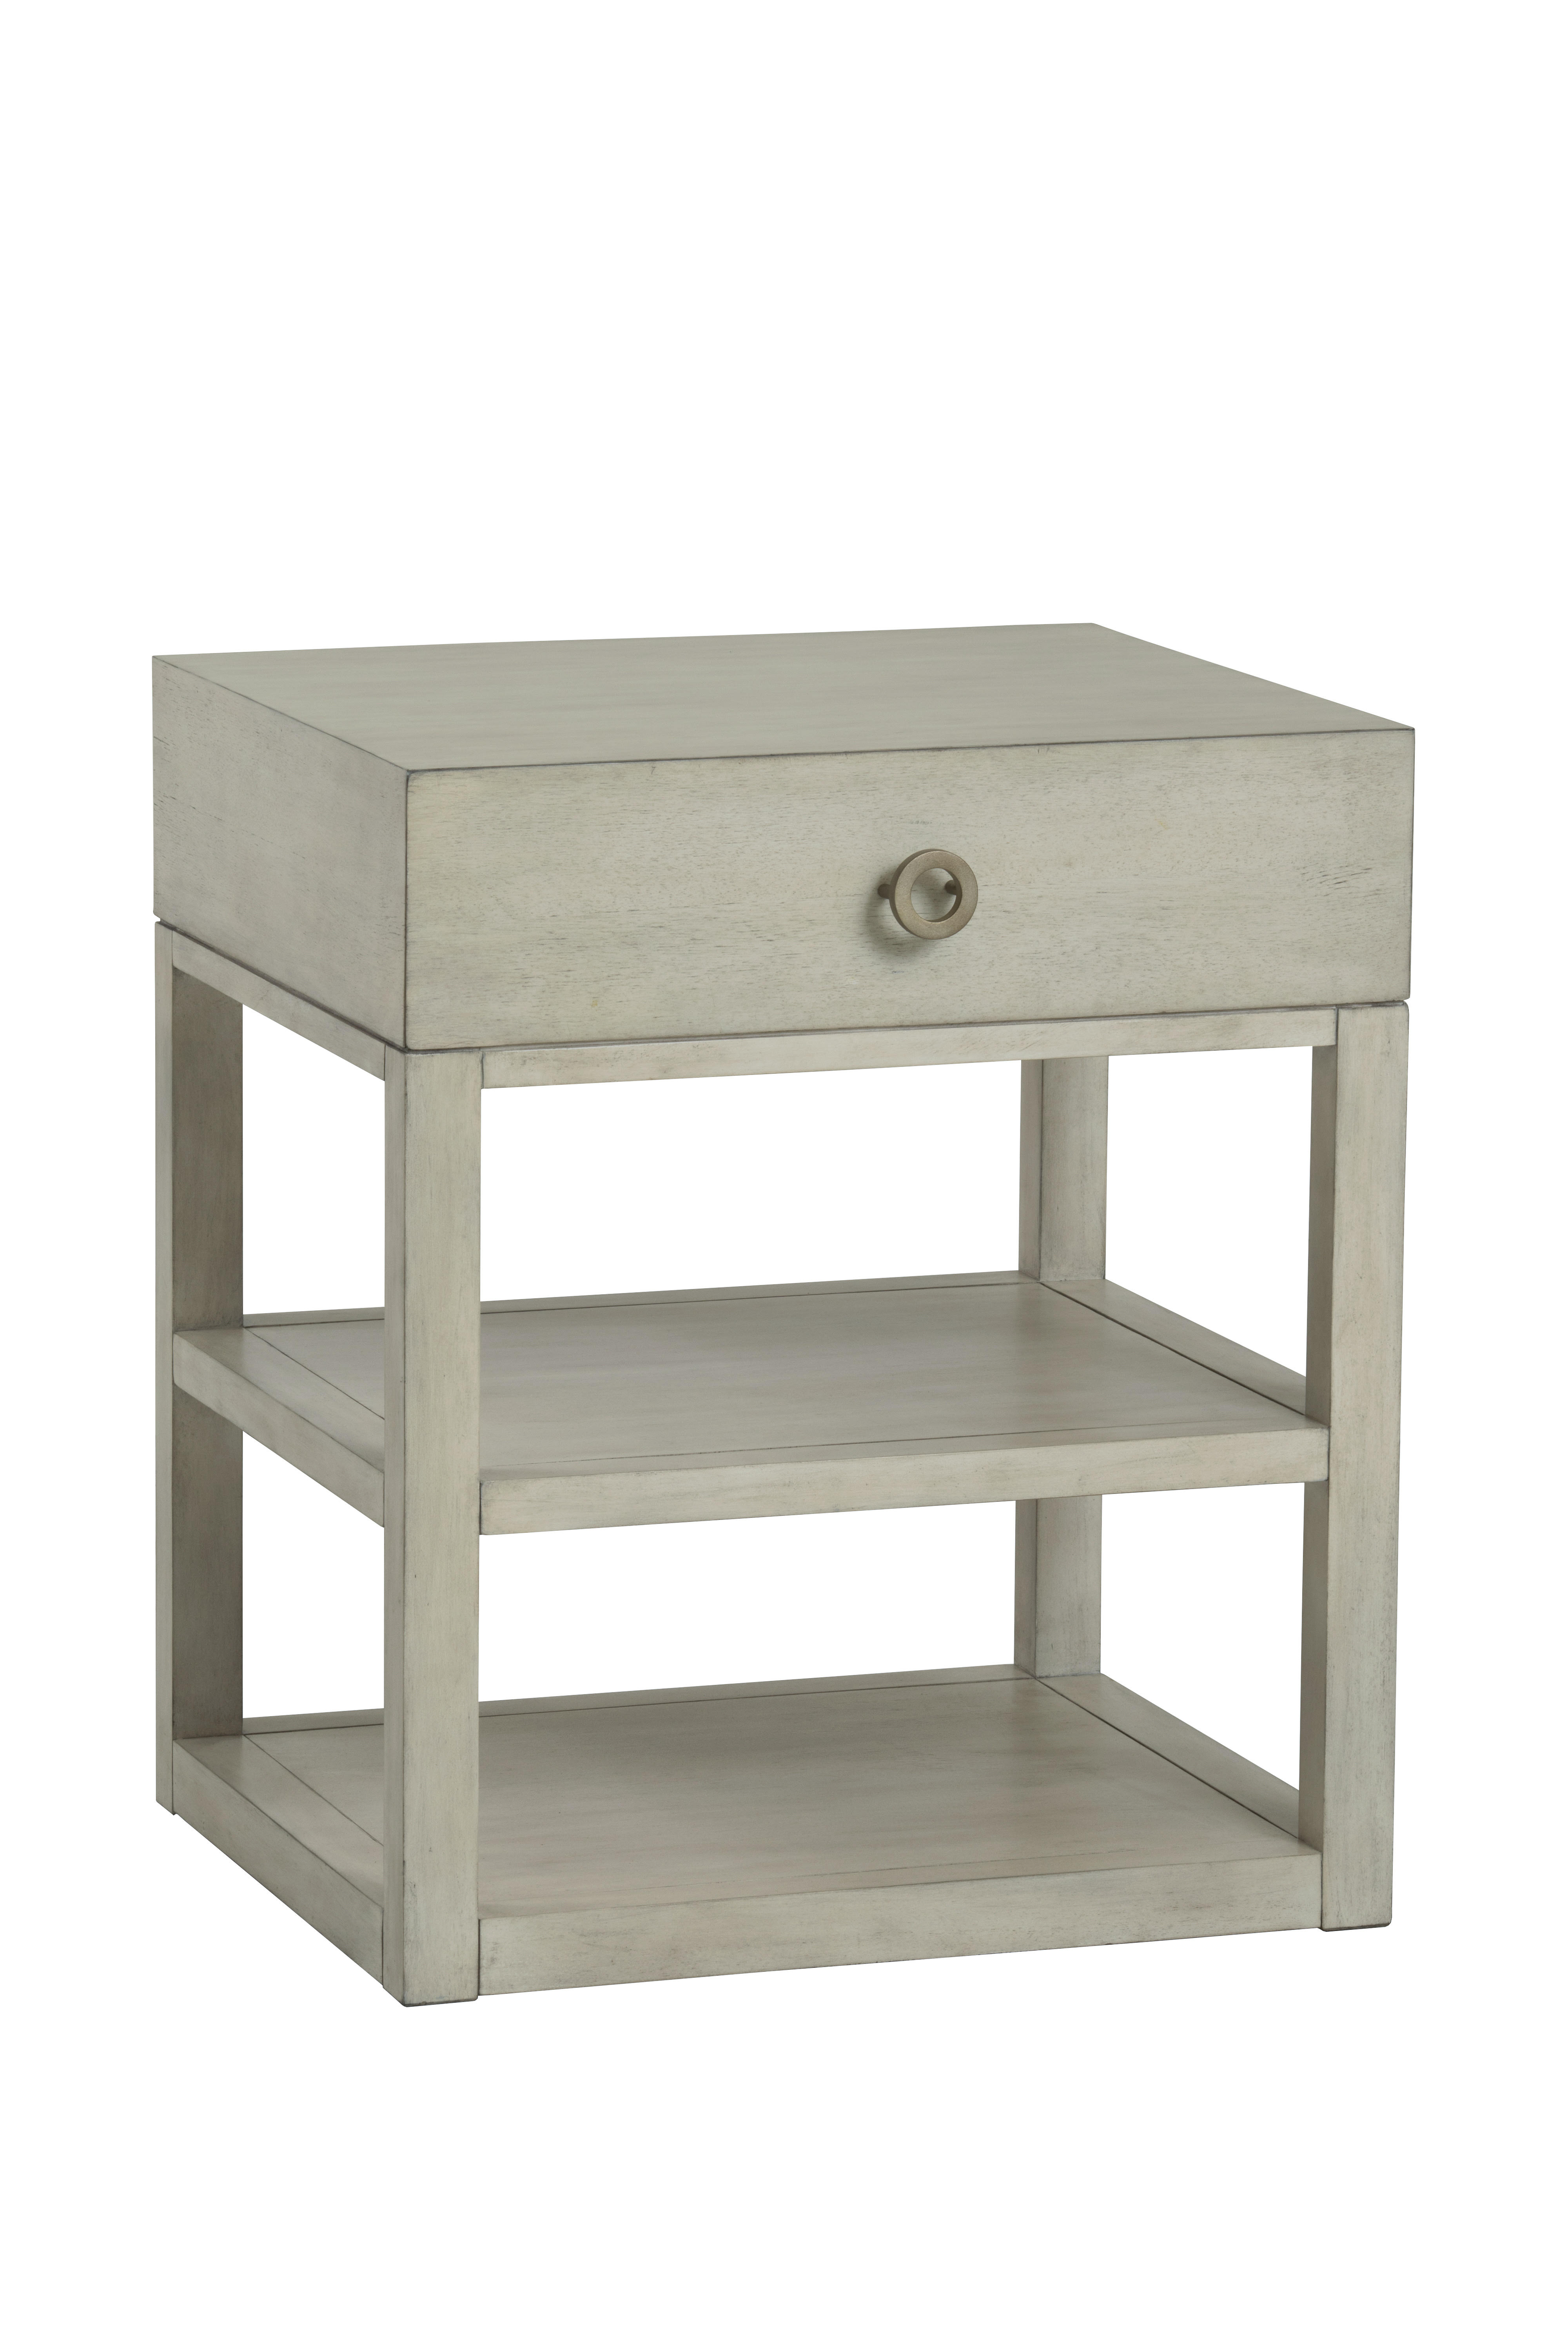 Curate Home Leeward tier small end table